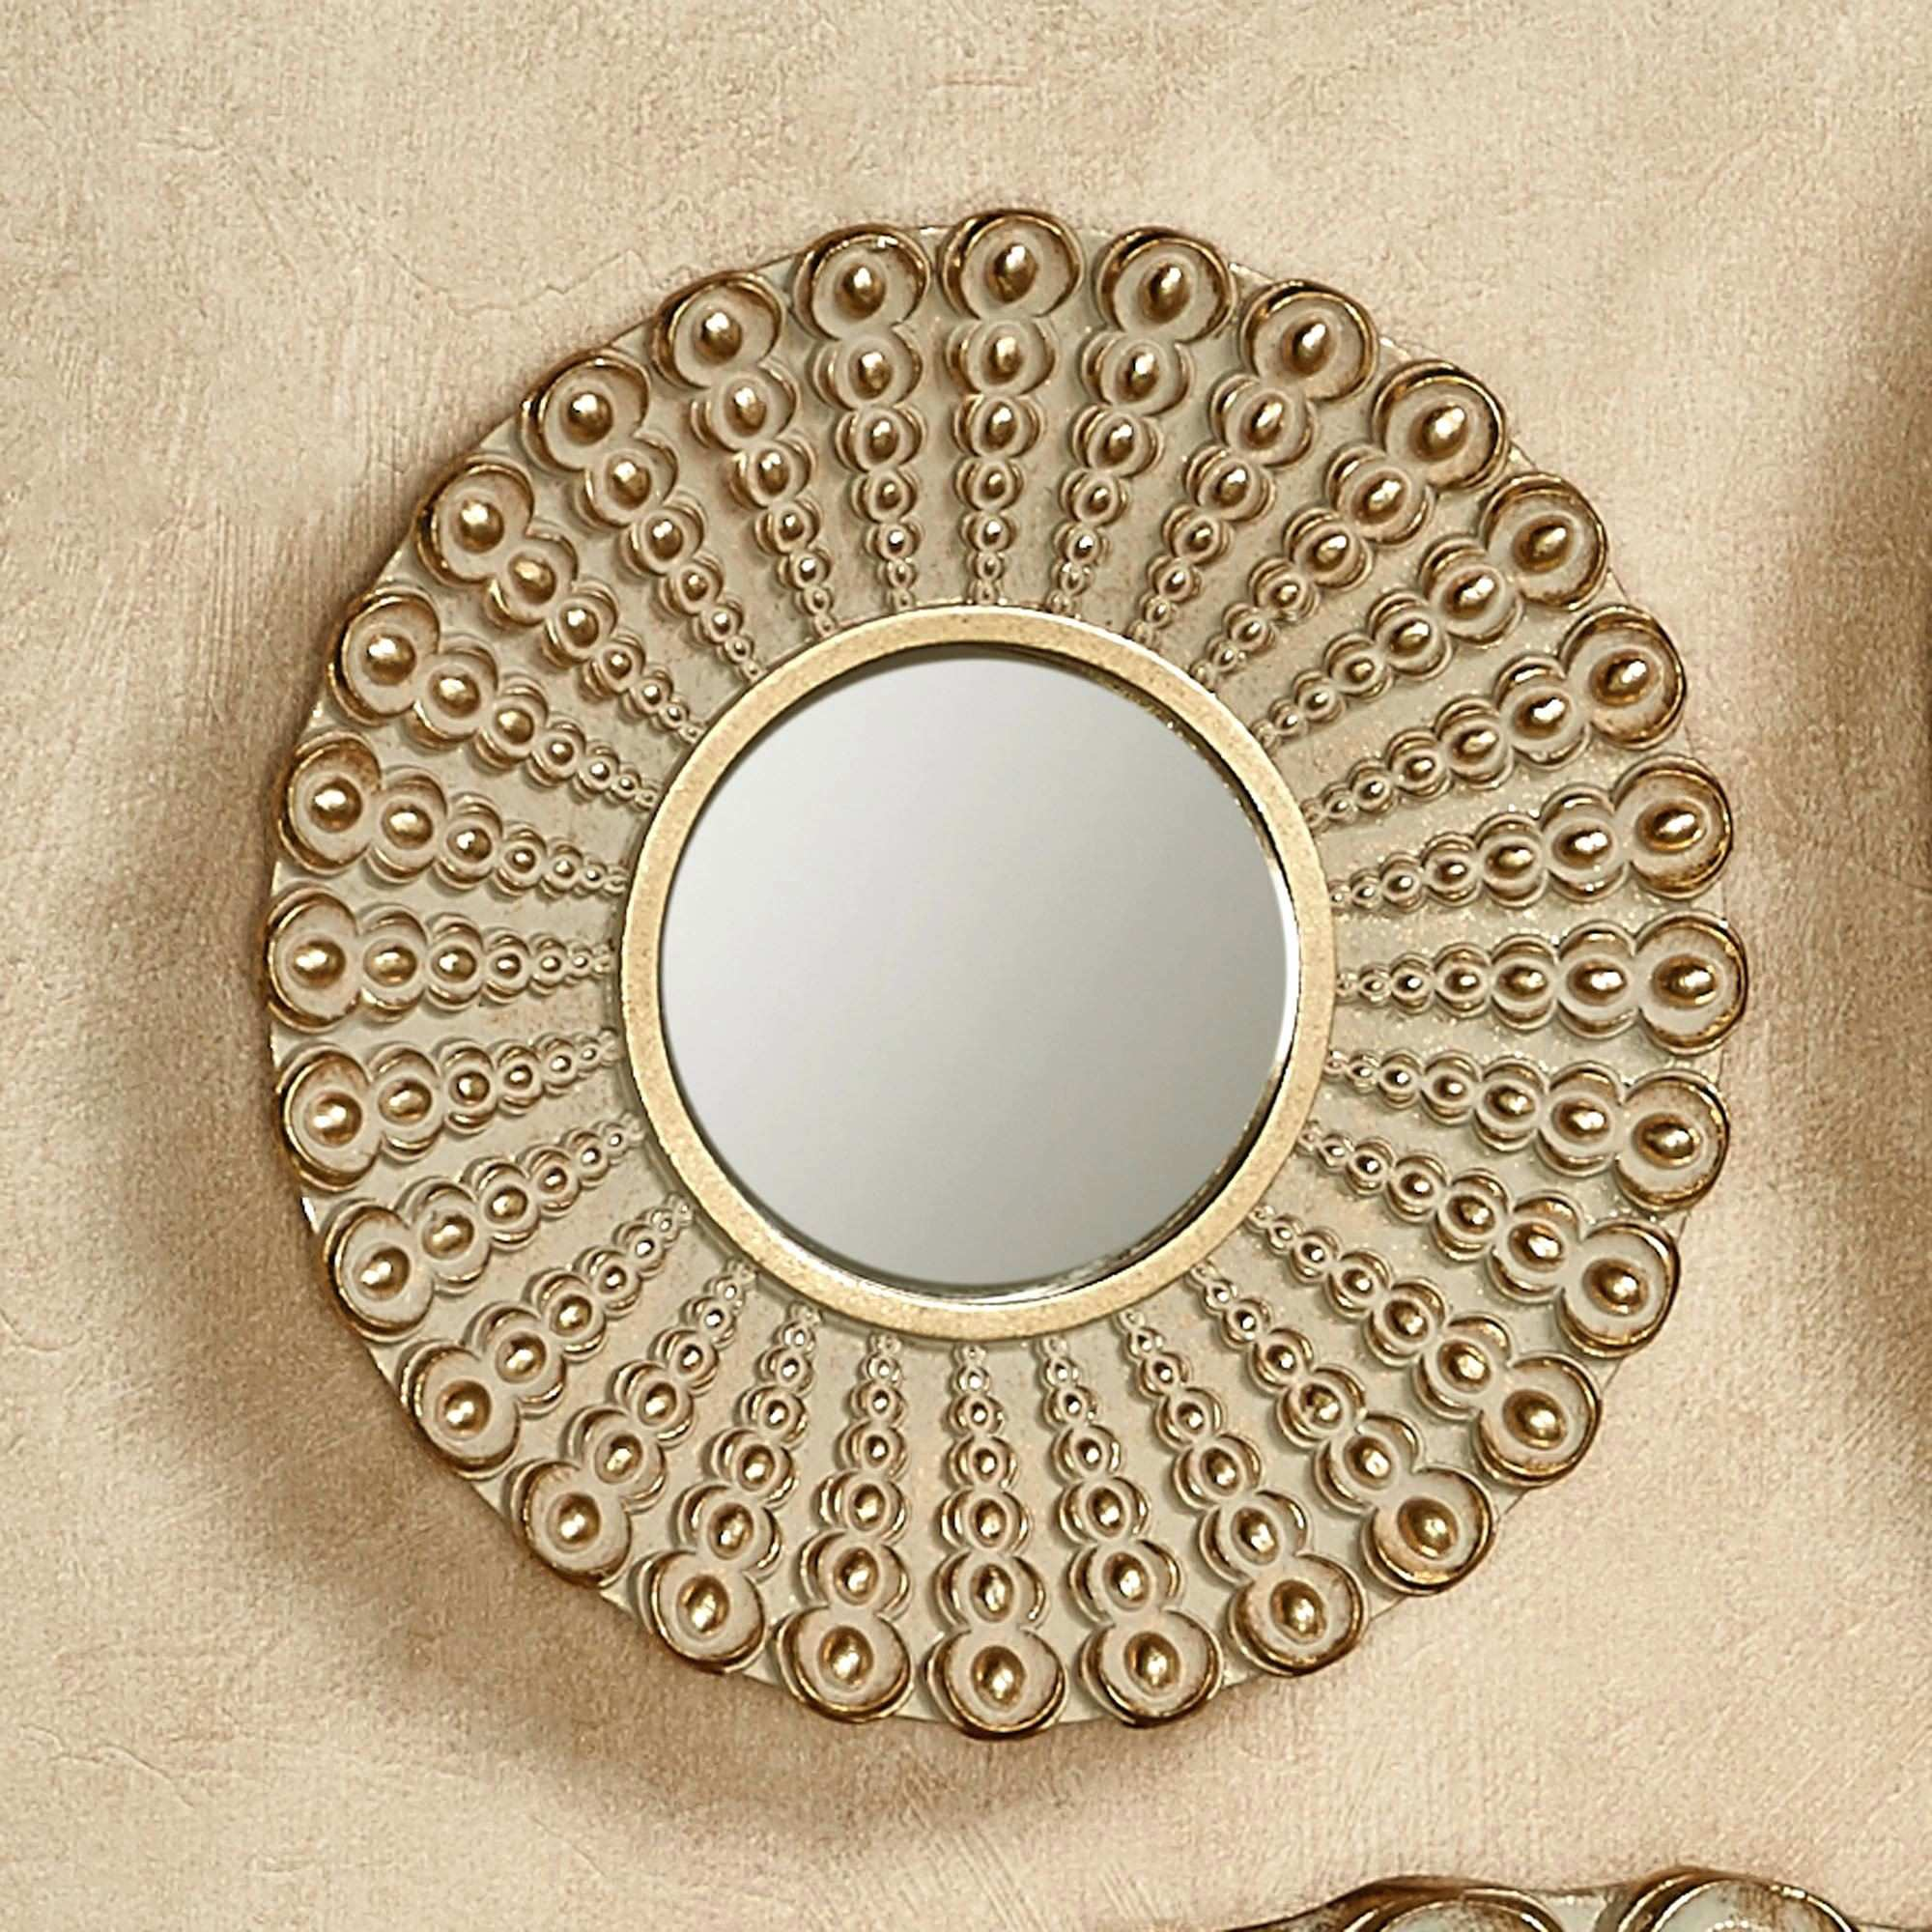 Wall Mirrors Small Wall Mirrors Ebay Small Wall Mirrors Walmart